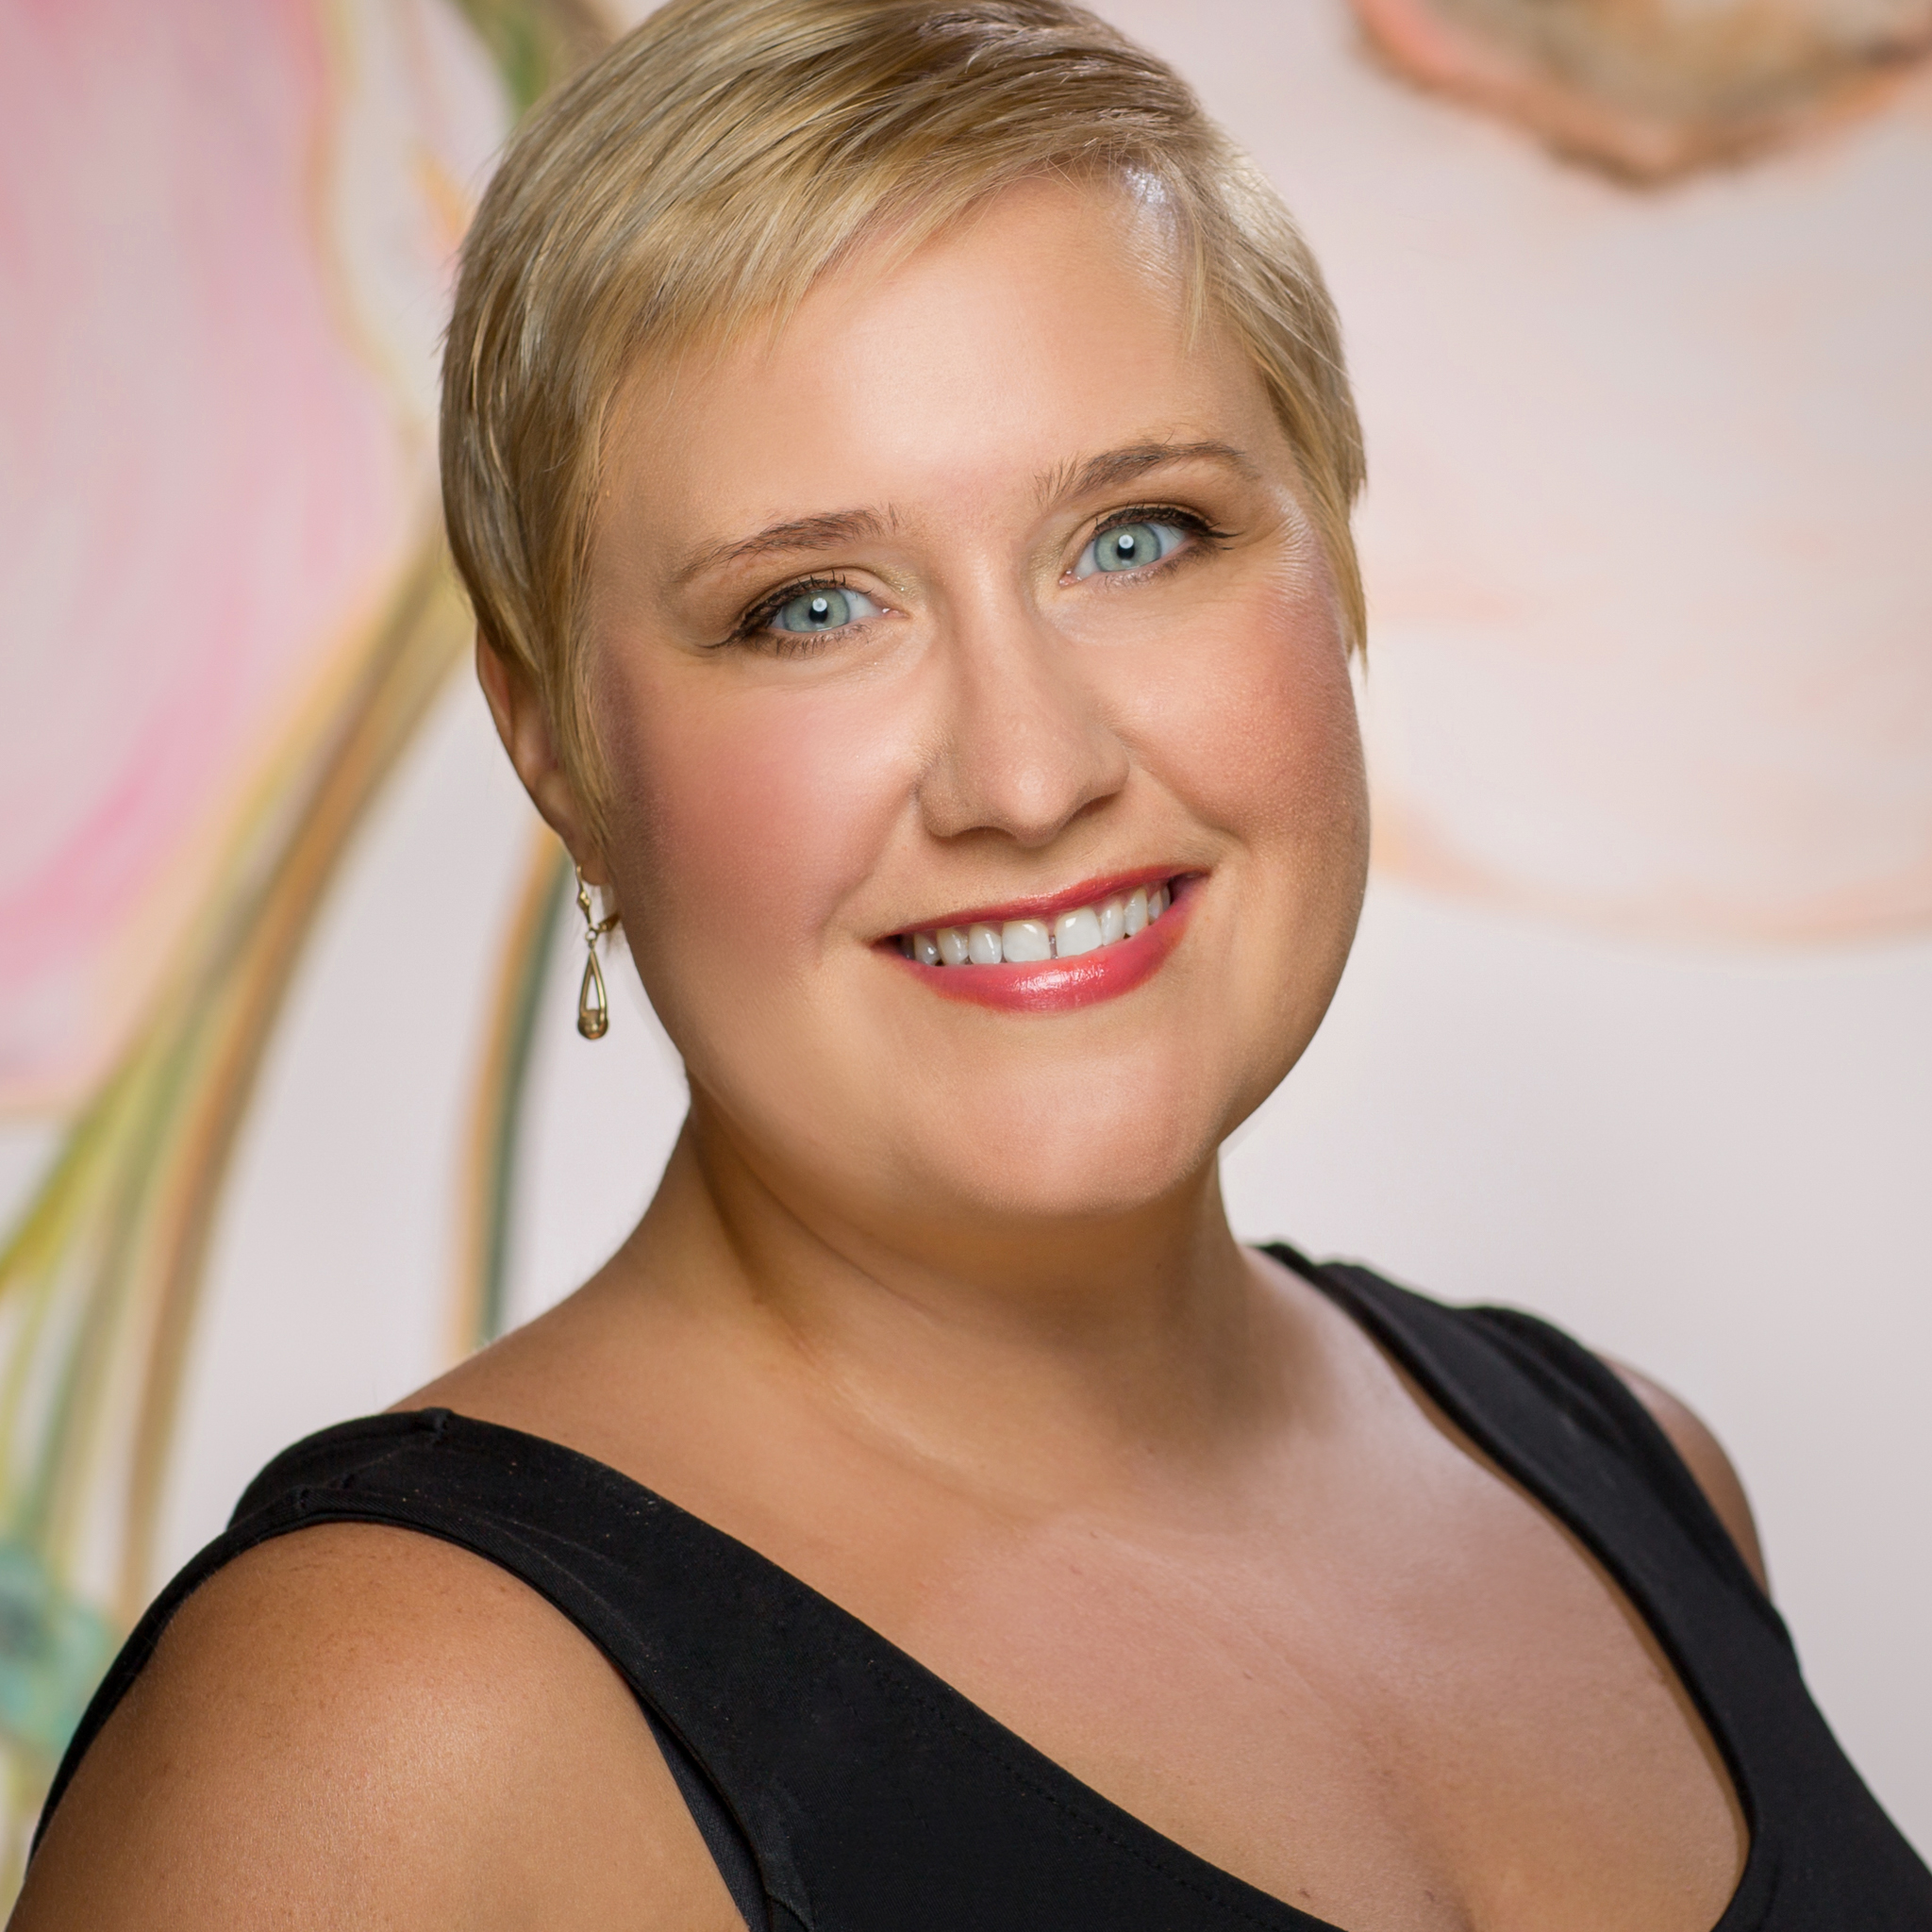 Renée Habashy - operations manager/creative director